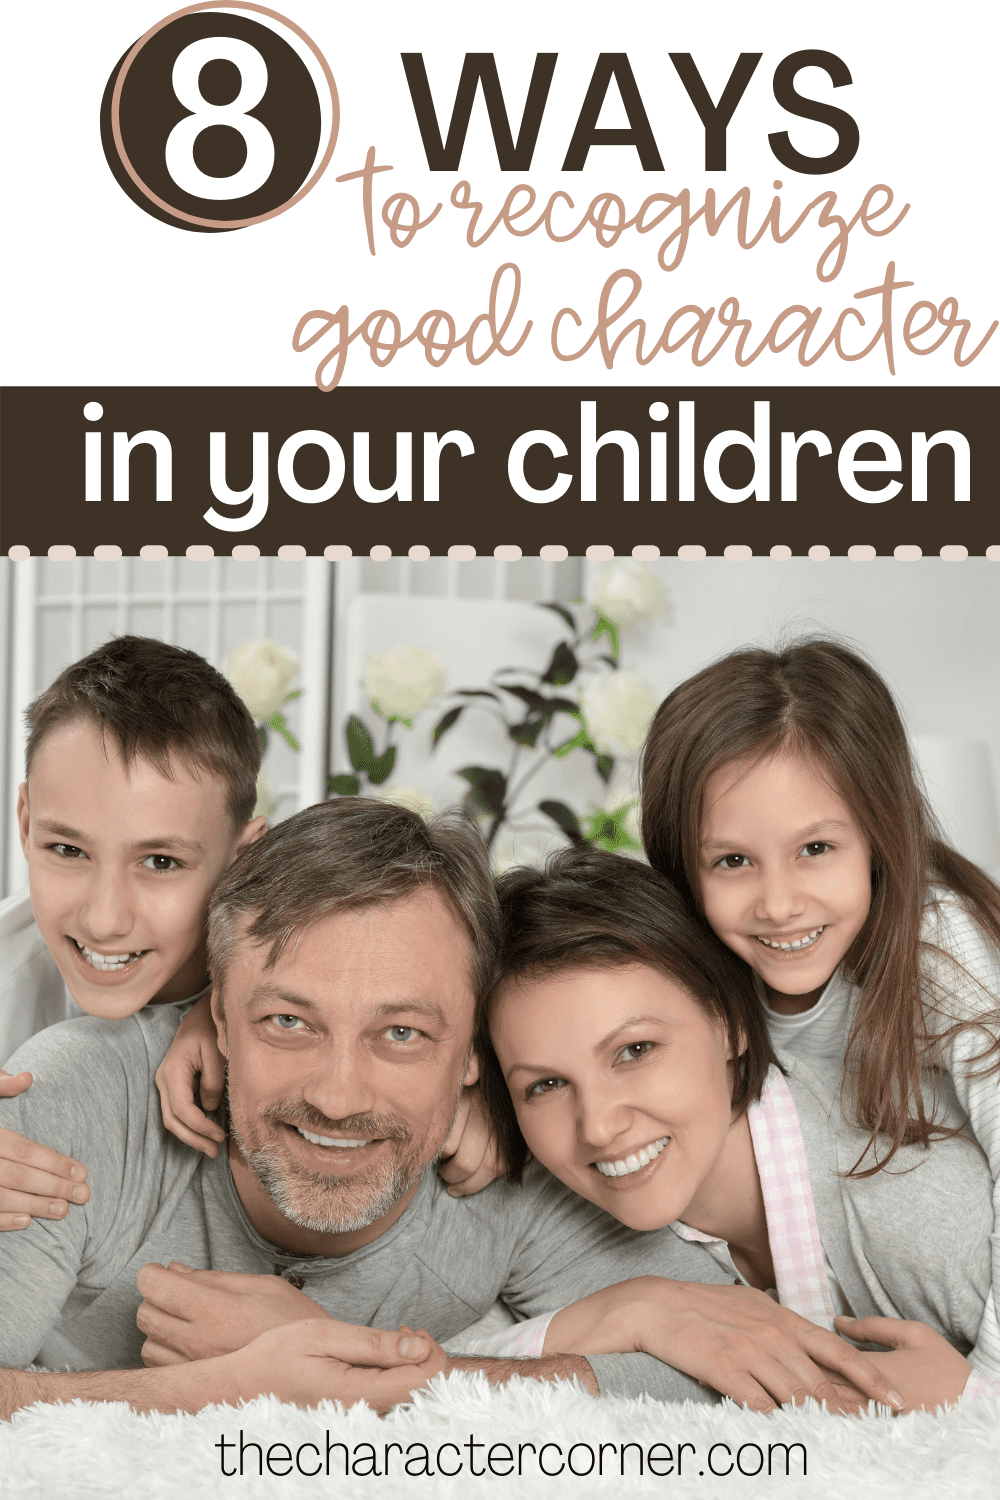 happy family all together text on image reads Here is a Great Checklist of Ways To Recognize Good Character In Your Children